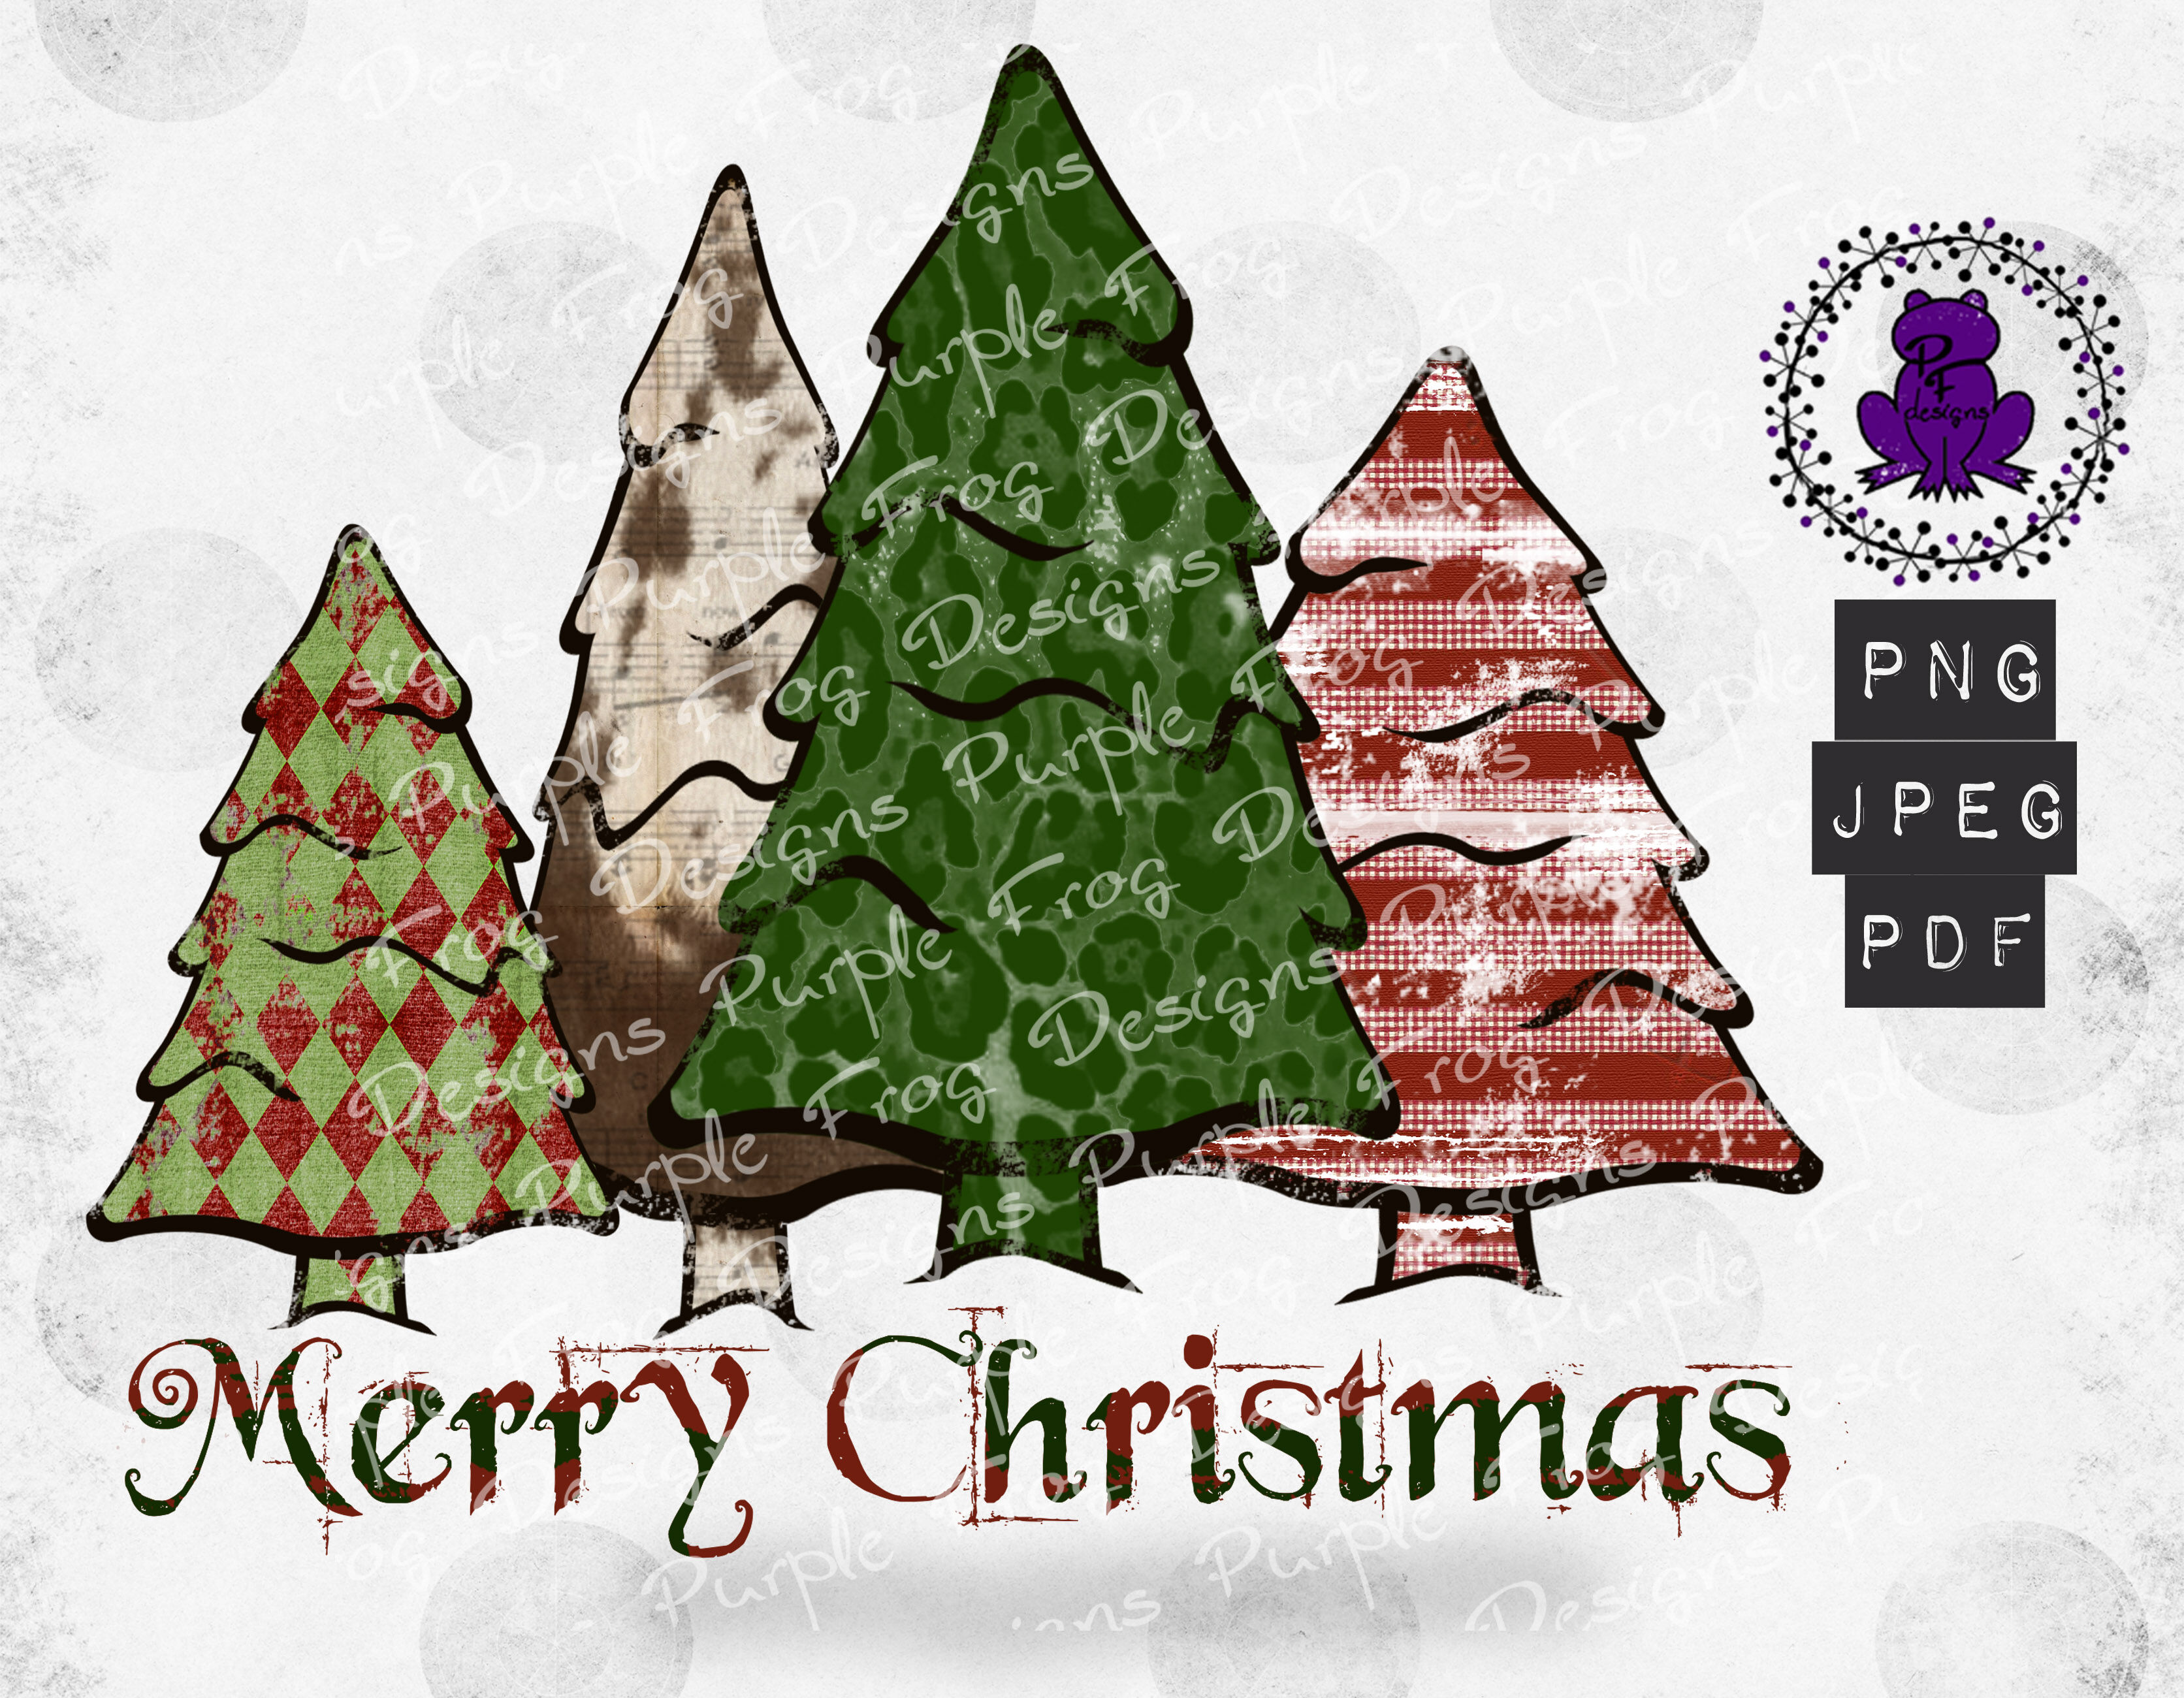 Merry Christmas Trees Leopard Print Distressed By Purple Frog